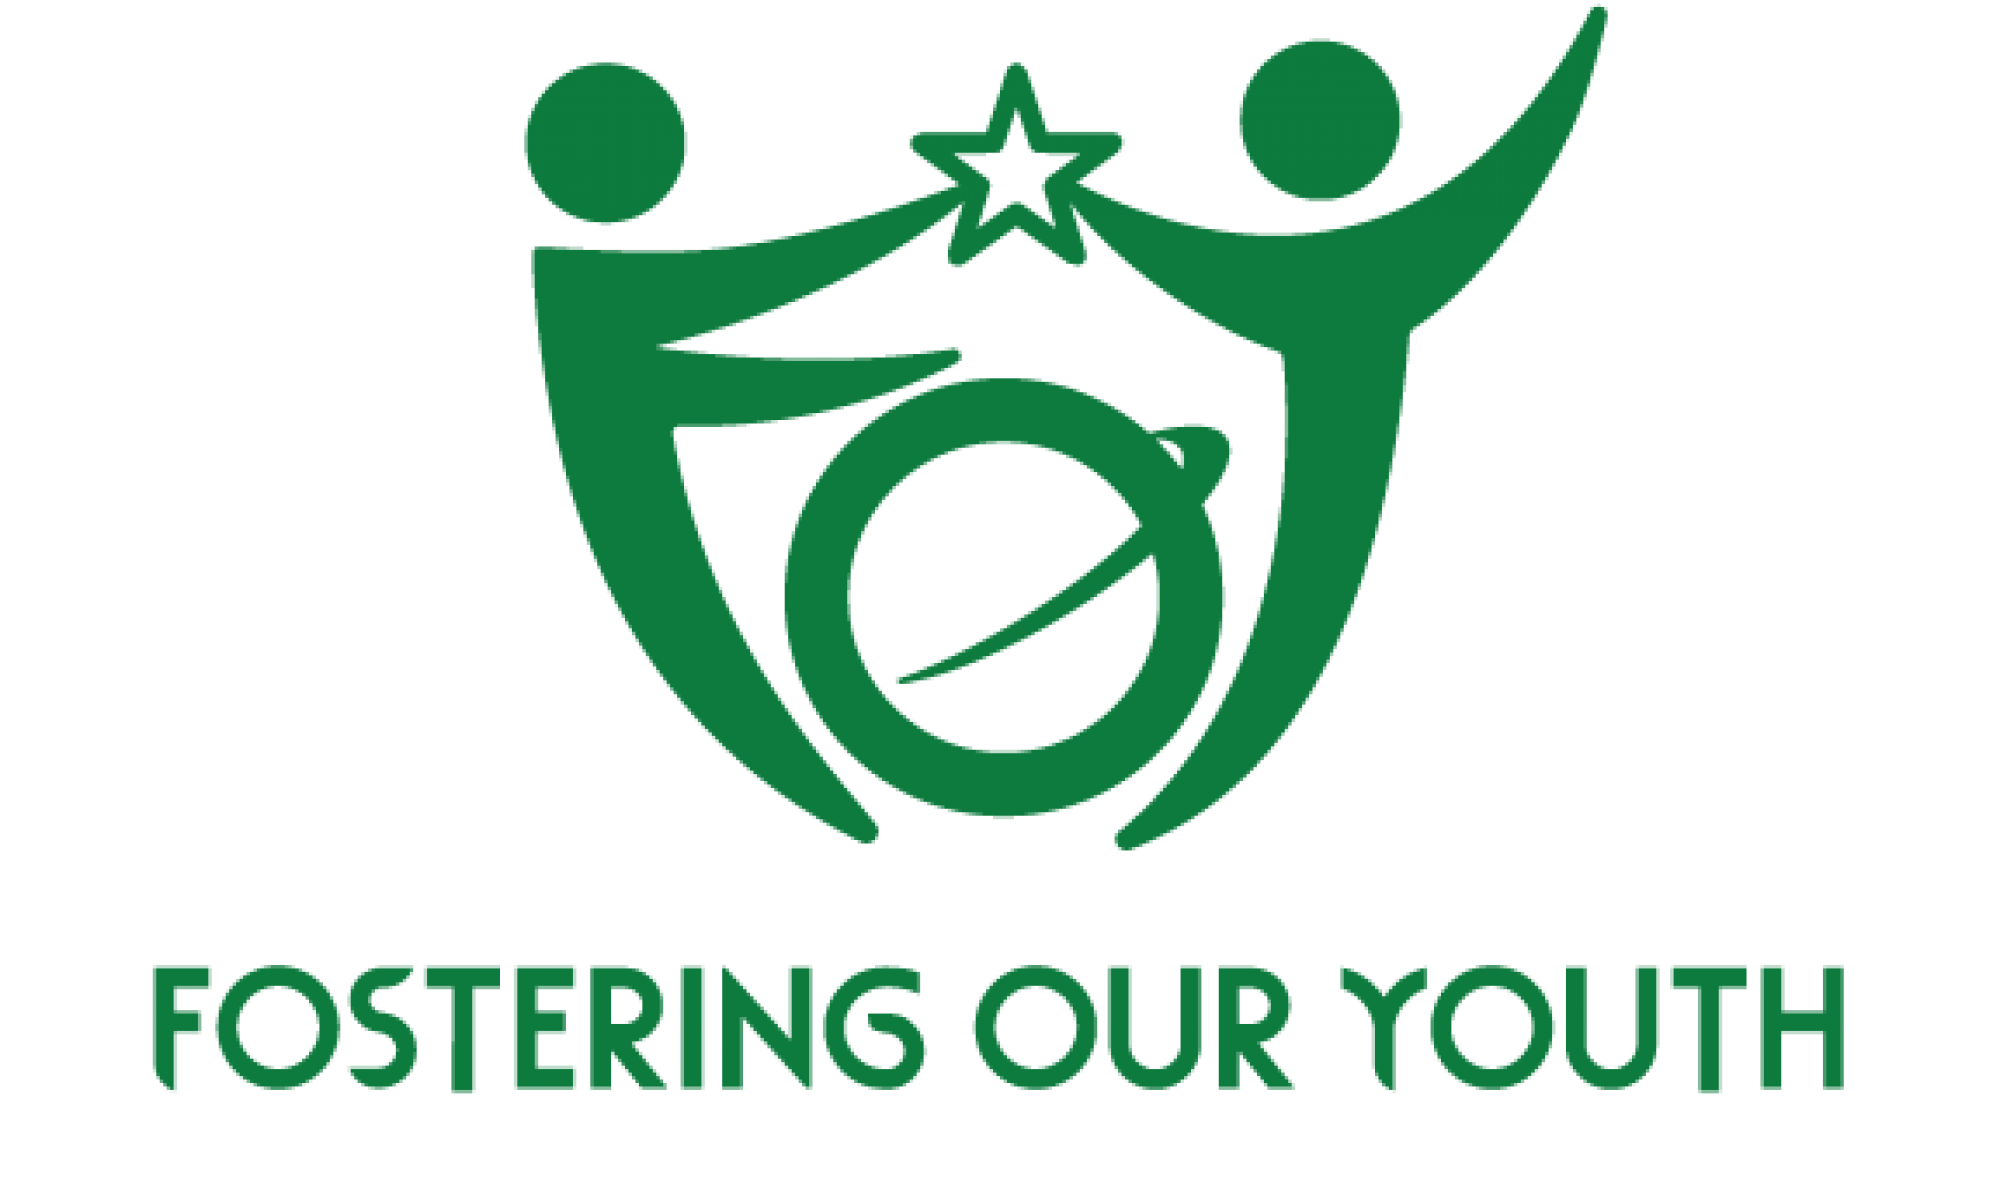 cropped-fosteringouryouth_logo_green.png